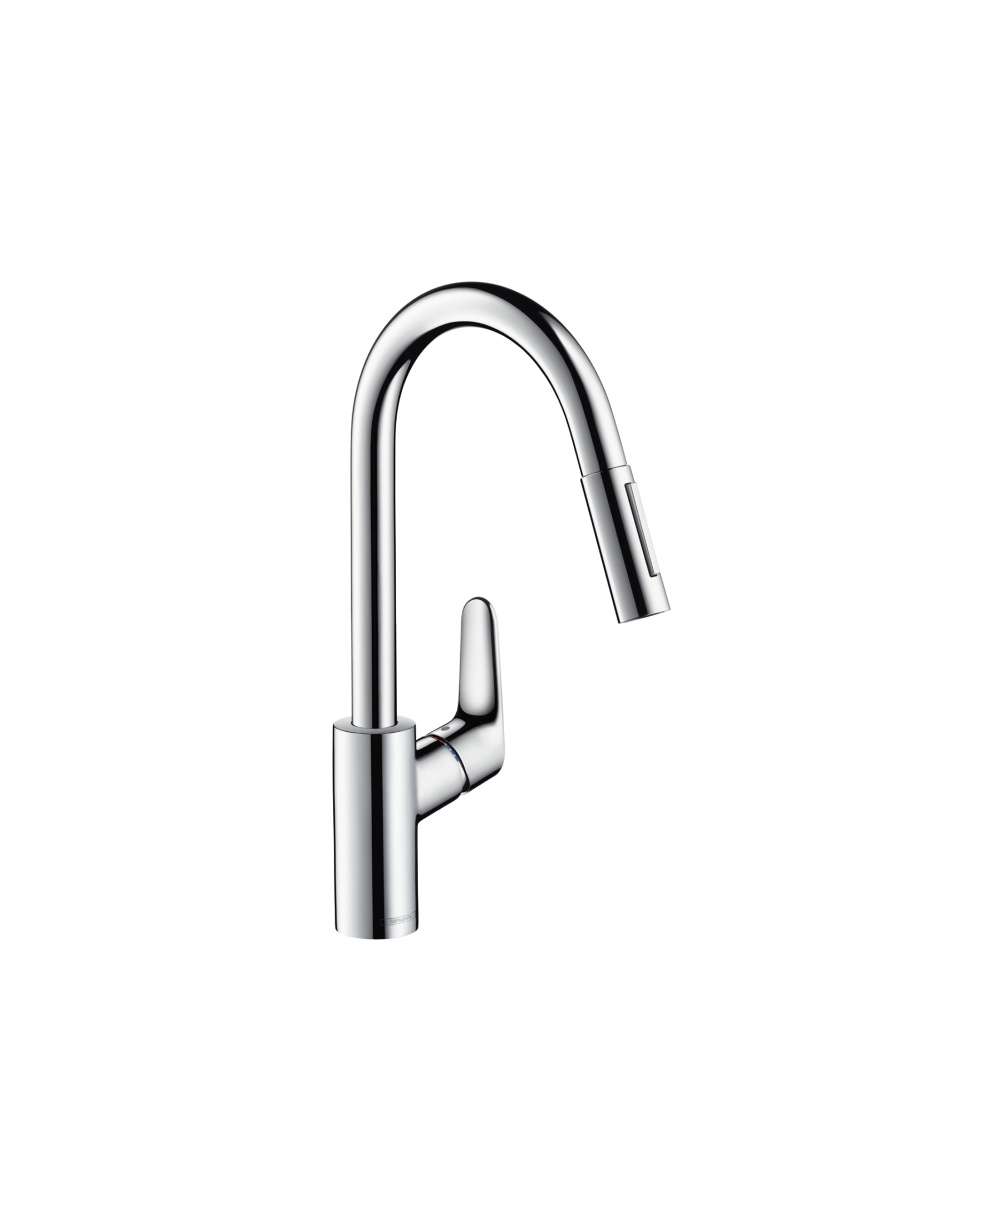 Hansgrohe Focus Single Lever Kitchen Mixer with Pull-Out Spray ...